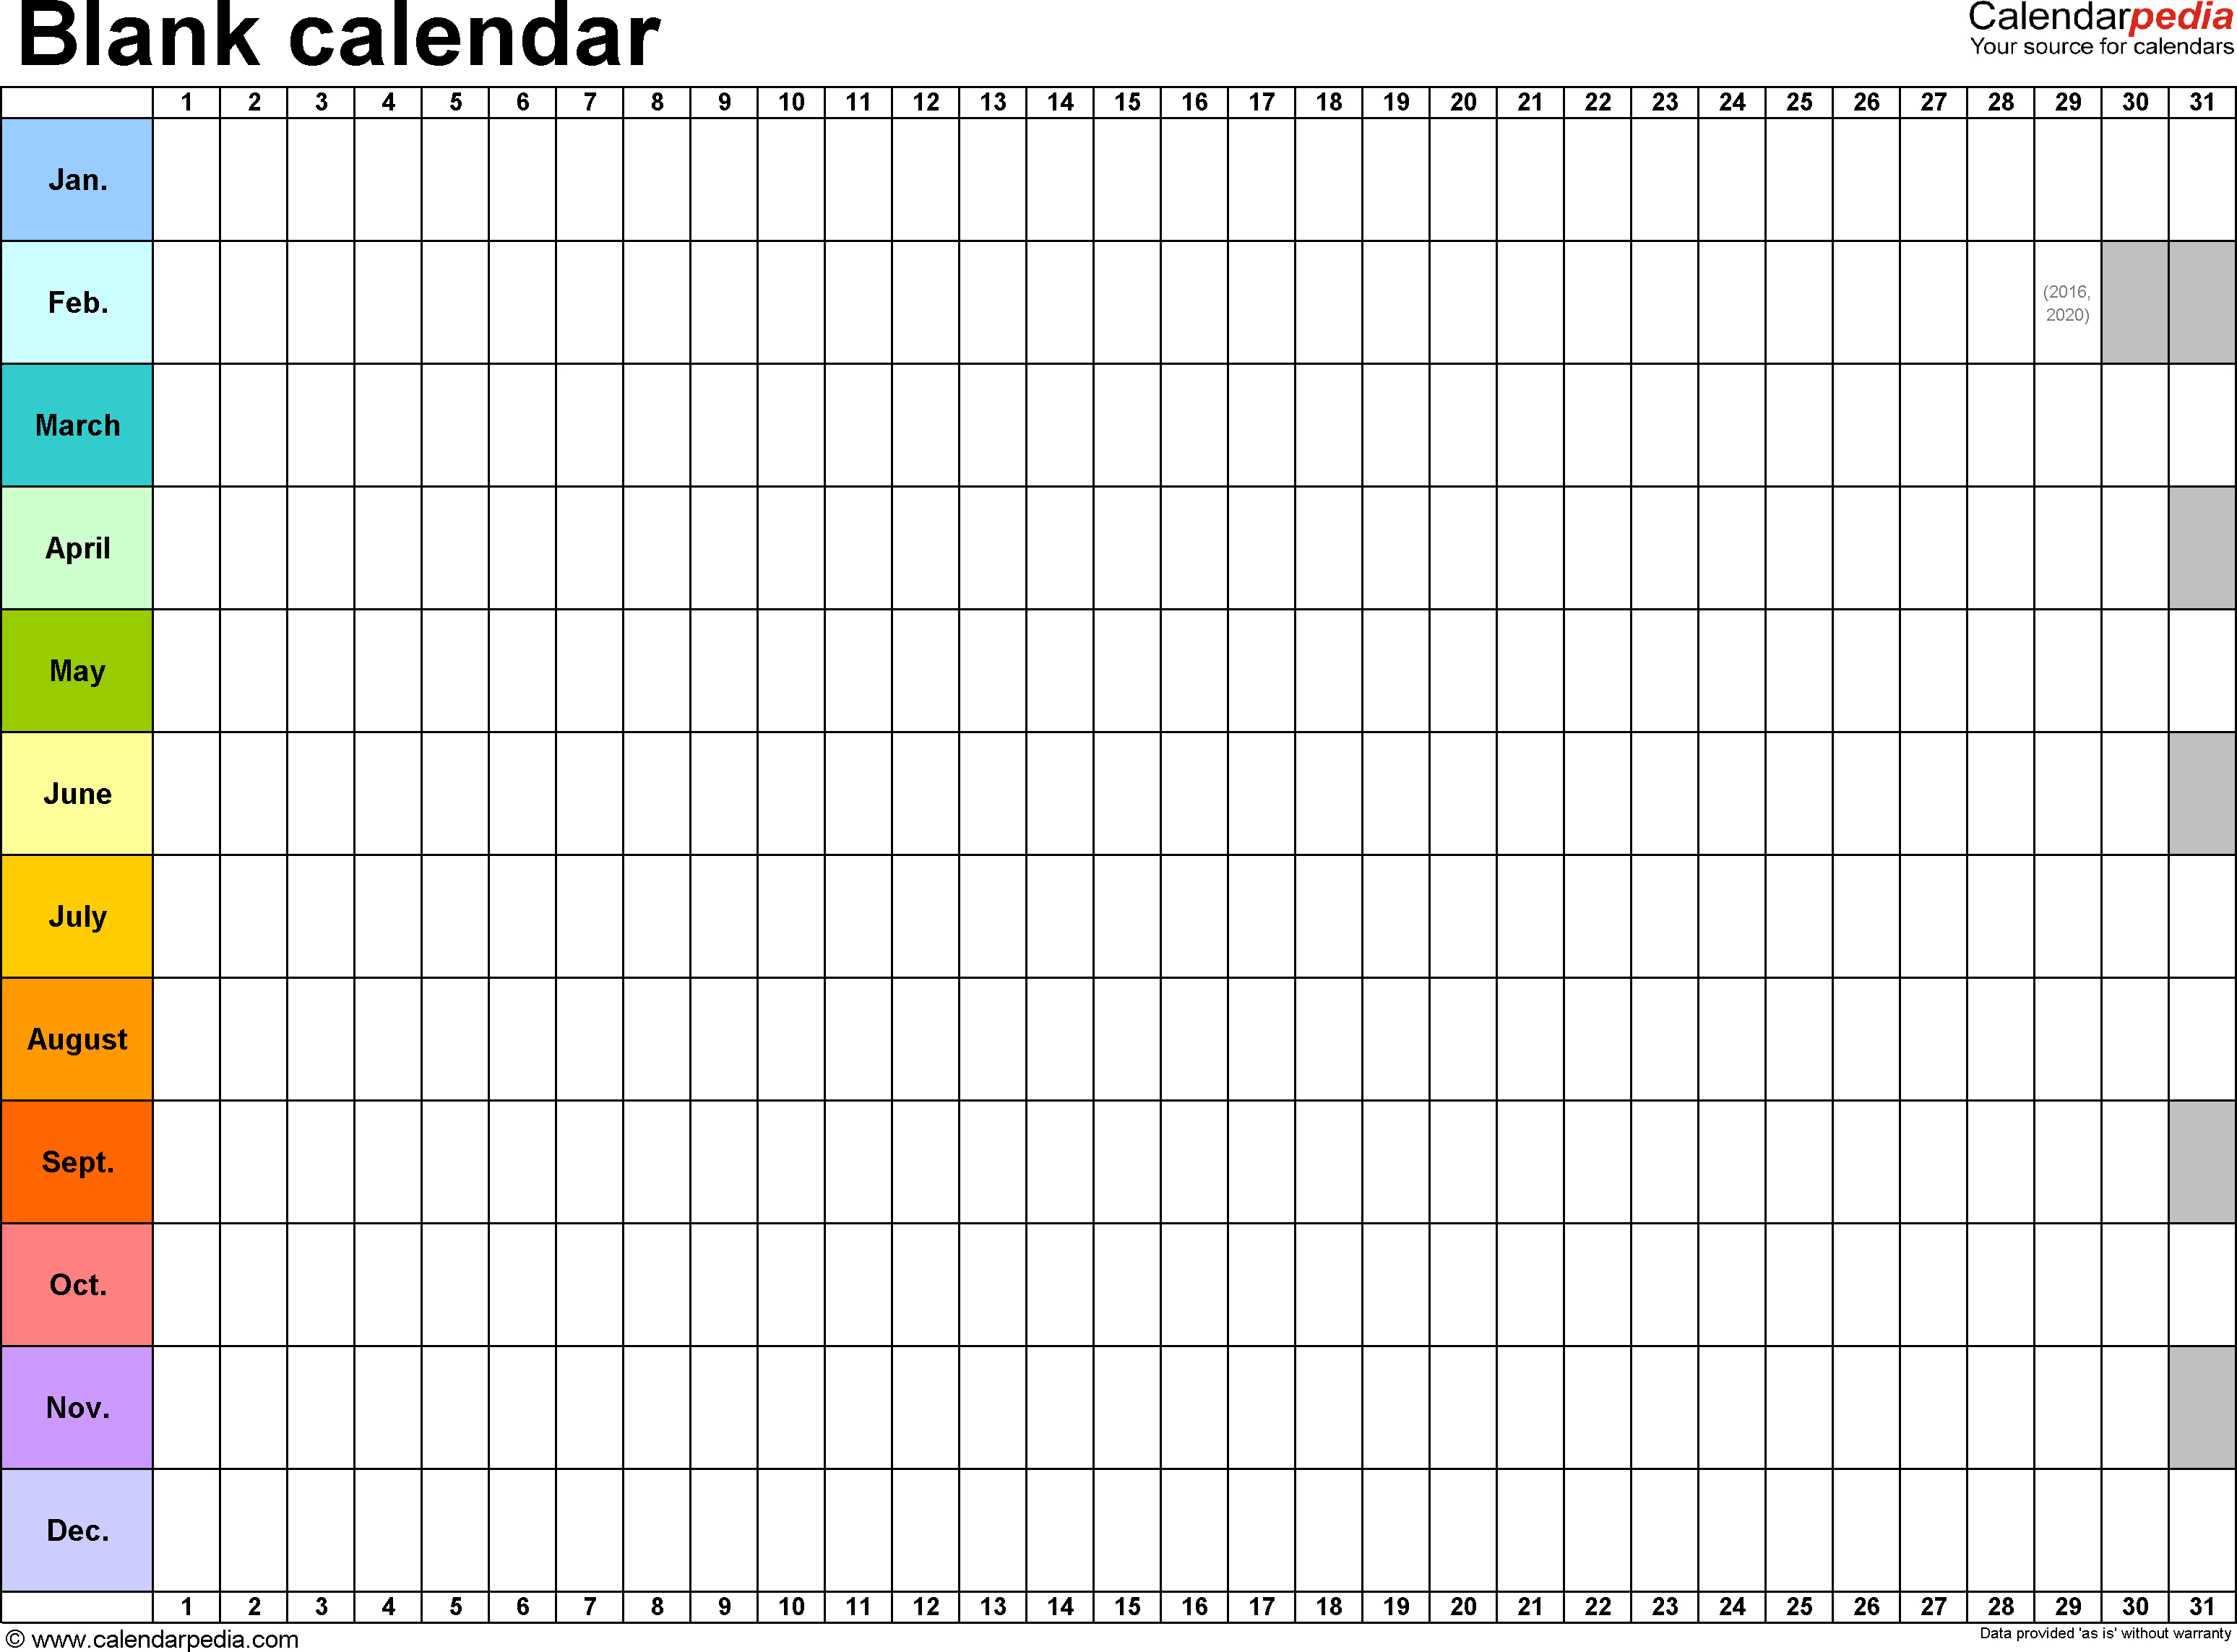 Blank Calendar - 9 Free Printable Microsoft Word Templates pertaining to Blank Monthly Calendars To Print